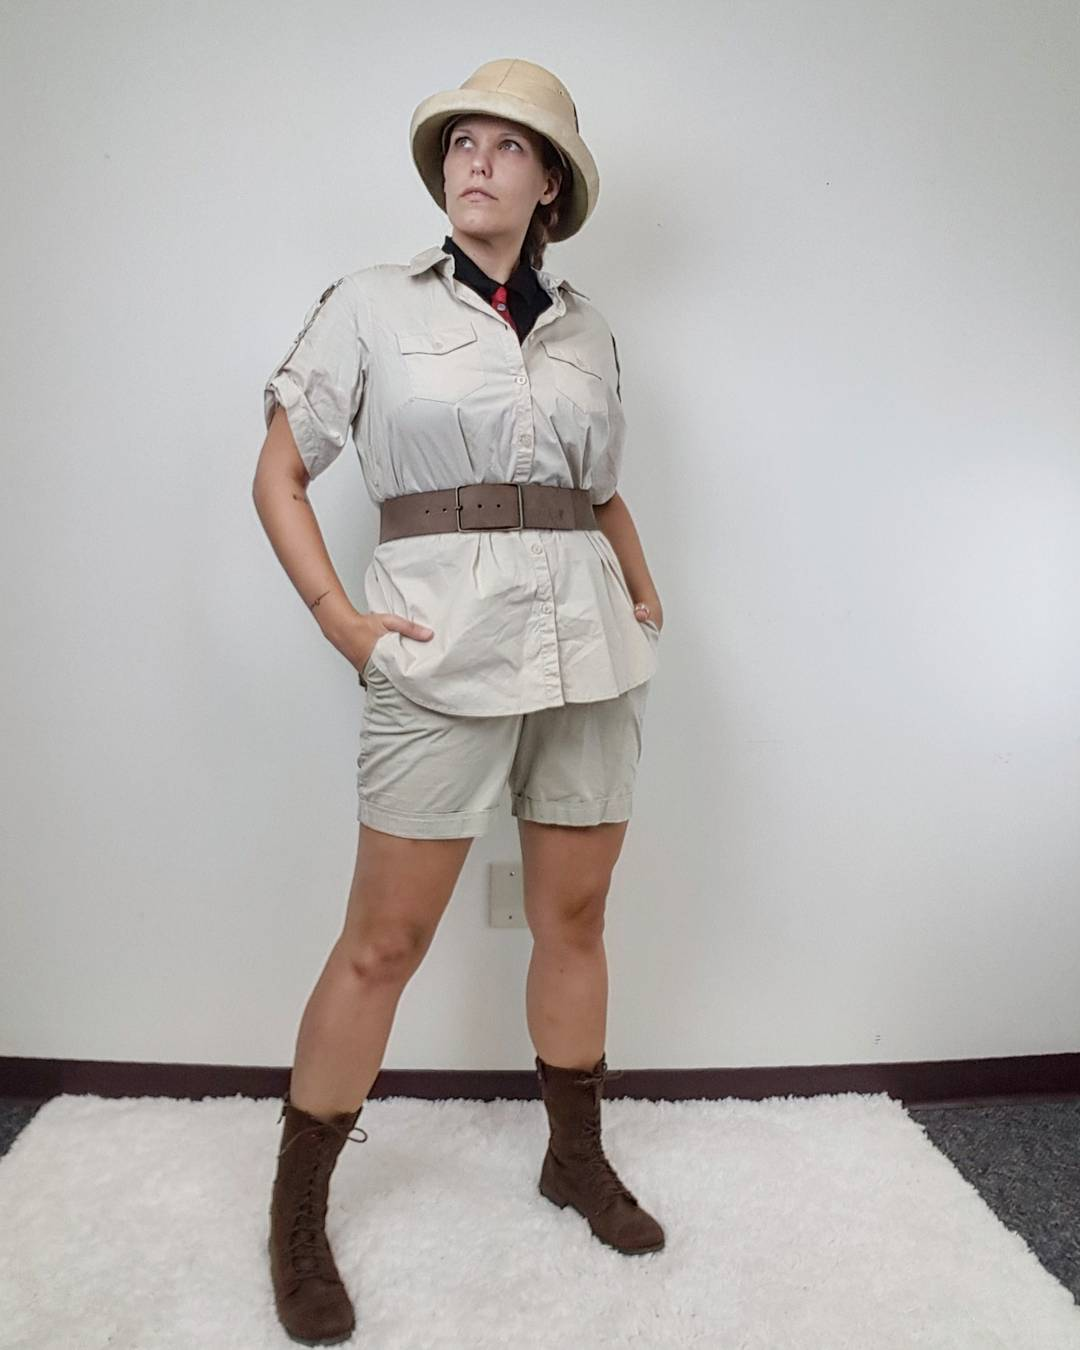 Thrift Store Cosplay Day 18 Van Pelt from Jumanji villain fashion blog post